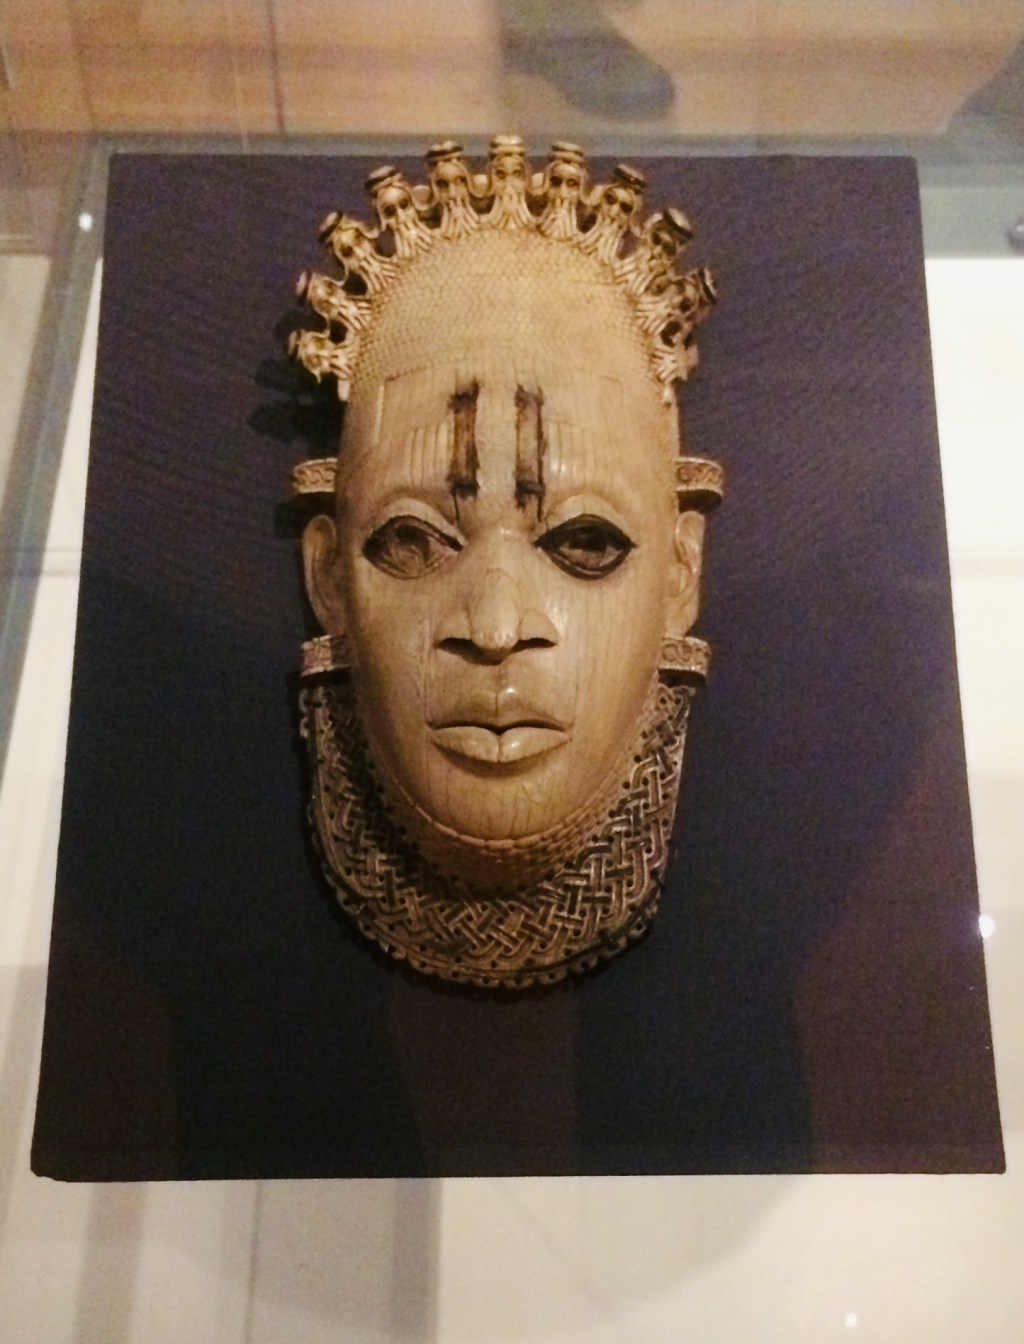 An ivory mask sculpture in the likeness of Queen Mother Idia, a powerful ruler in the 16th century Benin Empire